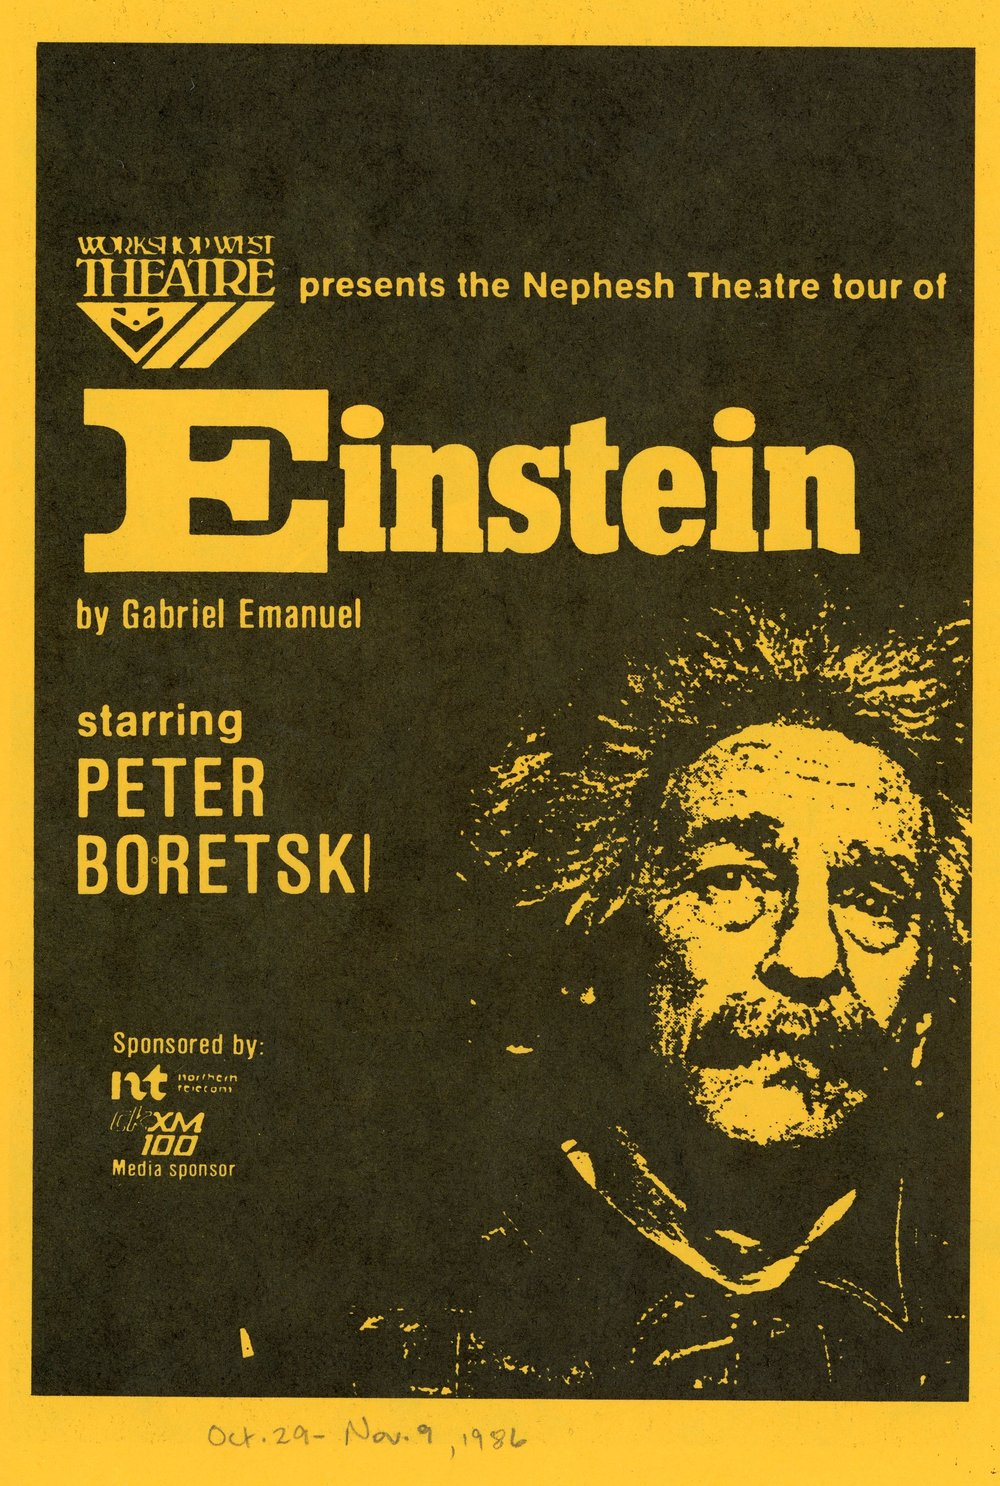 Einstein (On Tour) (October, 1986) - Program Cover.jpg